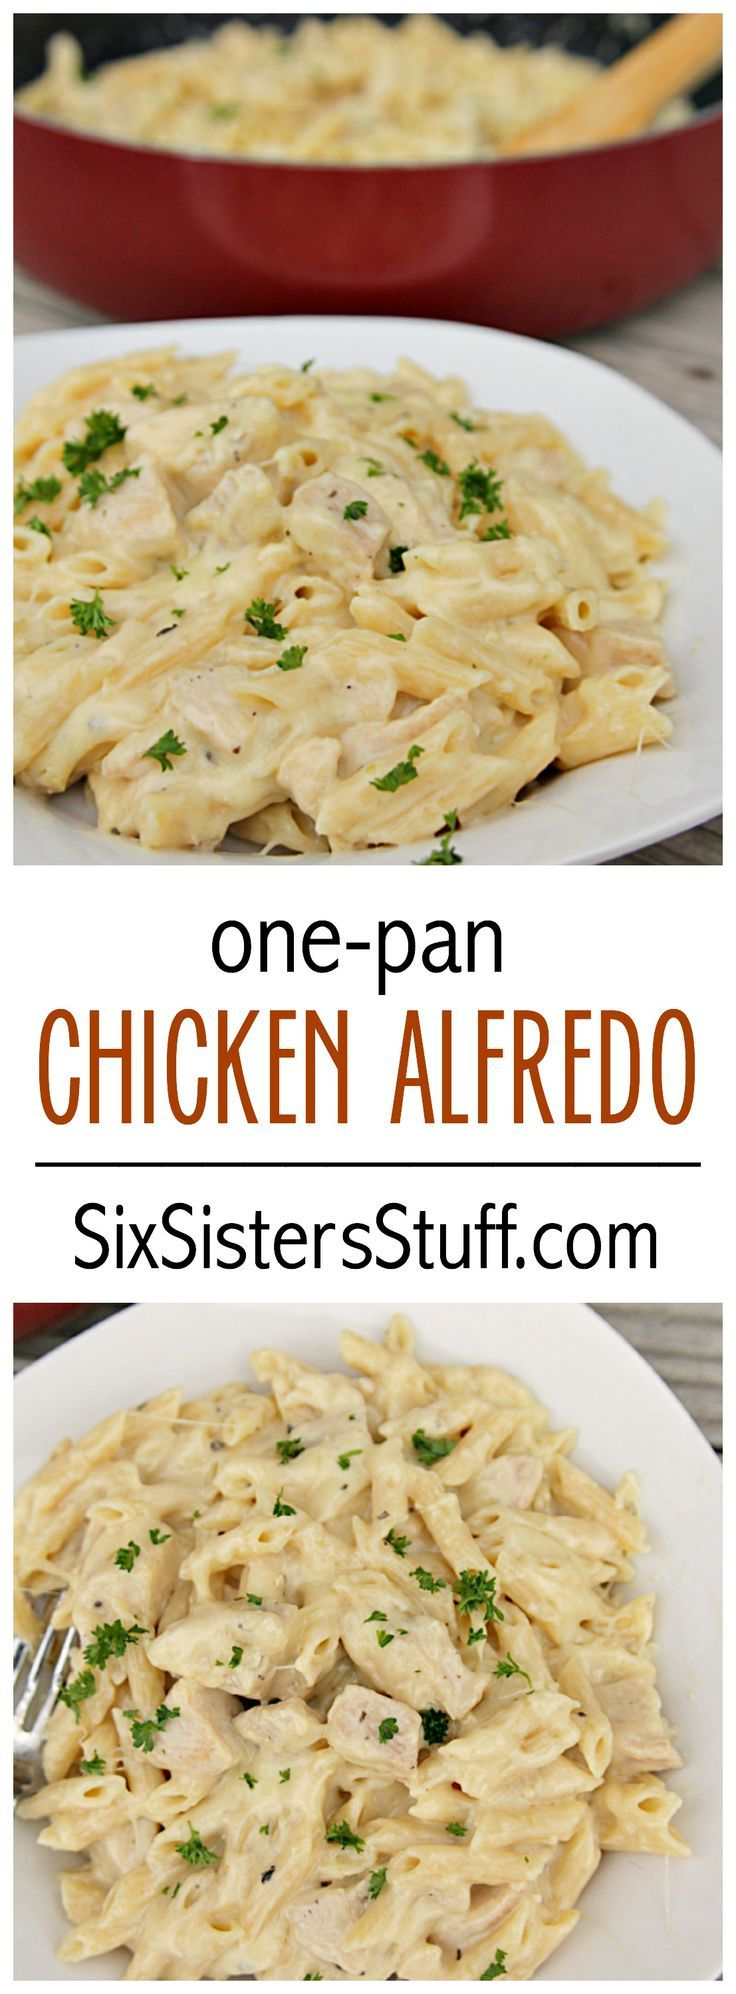 One-Pan Cheesy Chicken Alfredo